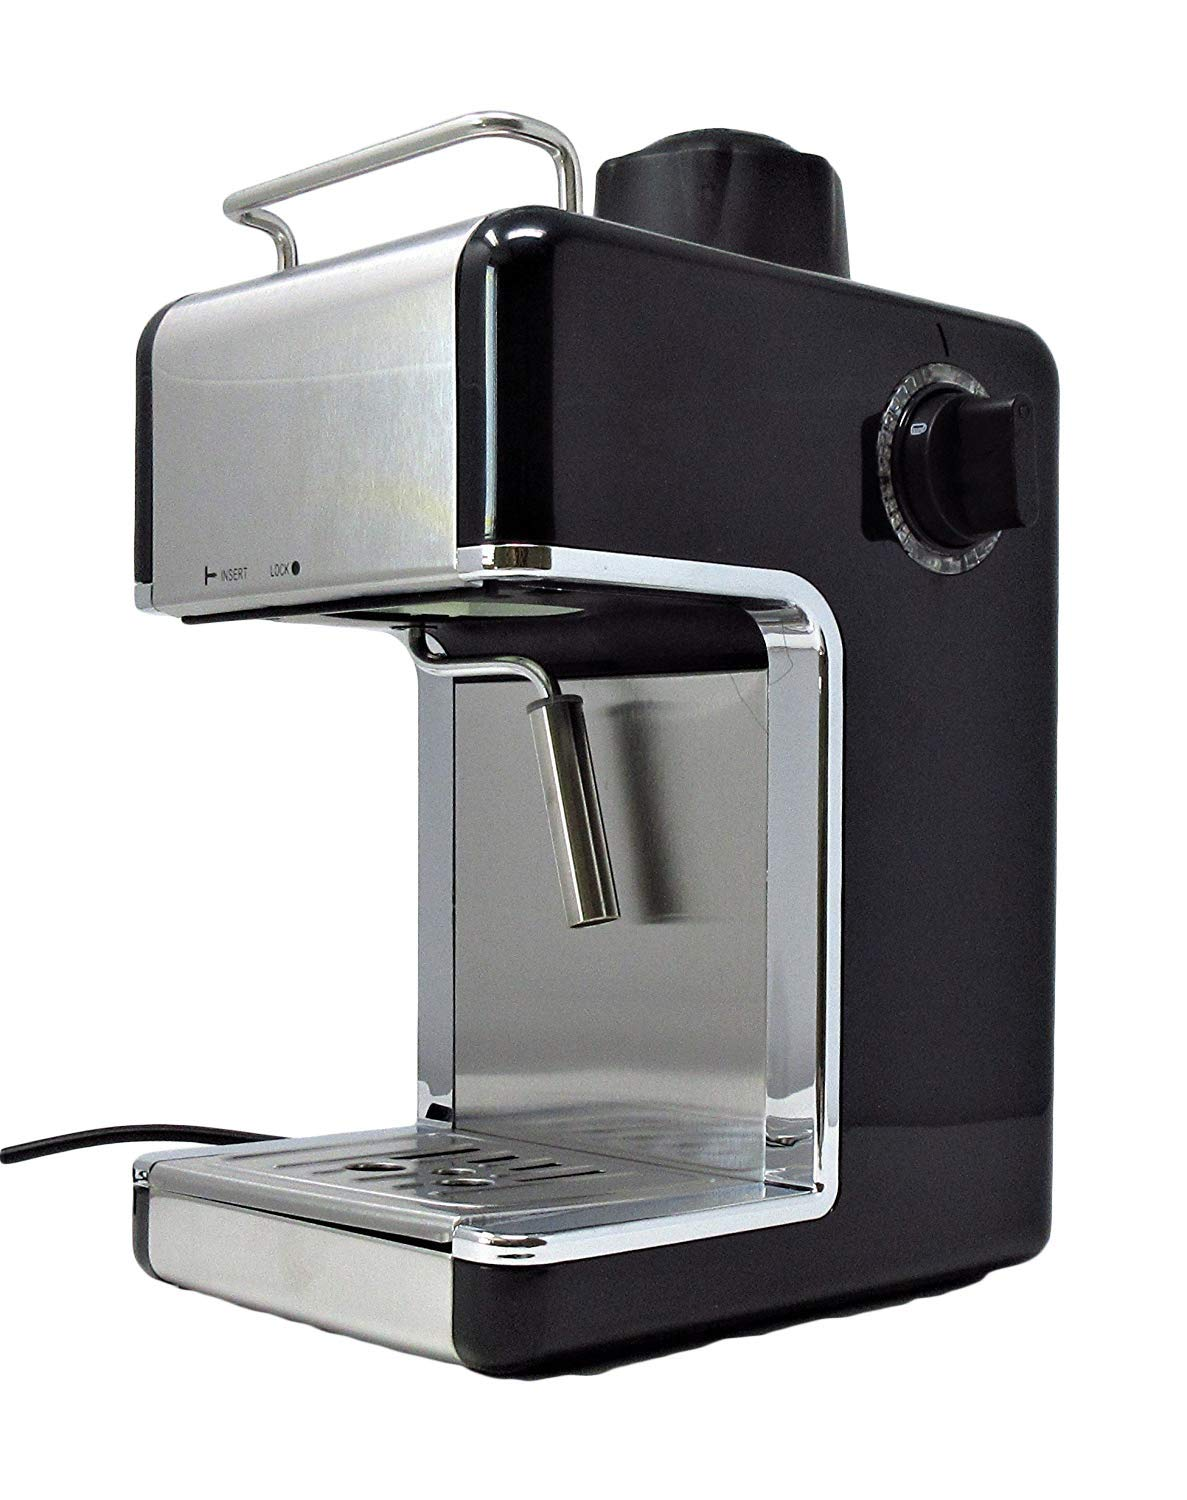 Cookspace ® 4-Cup Steam Espresso & Cappuccino, Latte Maker, Stainless Steel Coffee Maker Machine 800W 3.5bar, Black